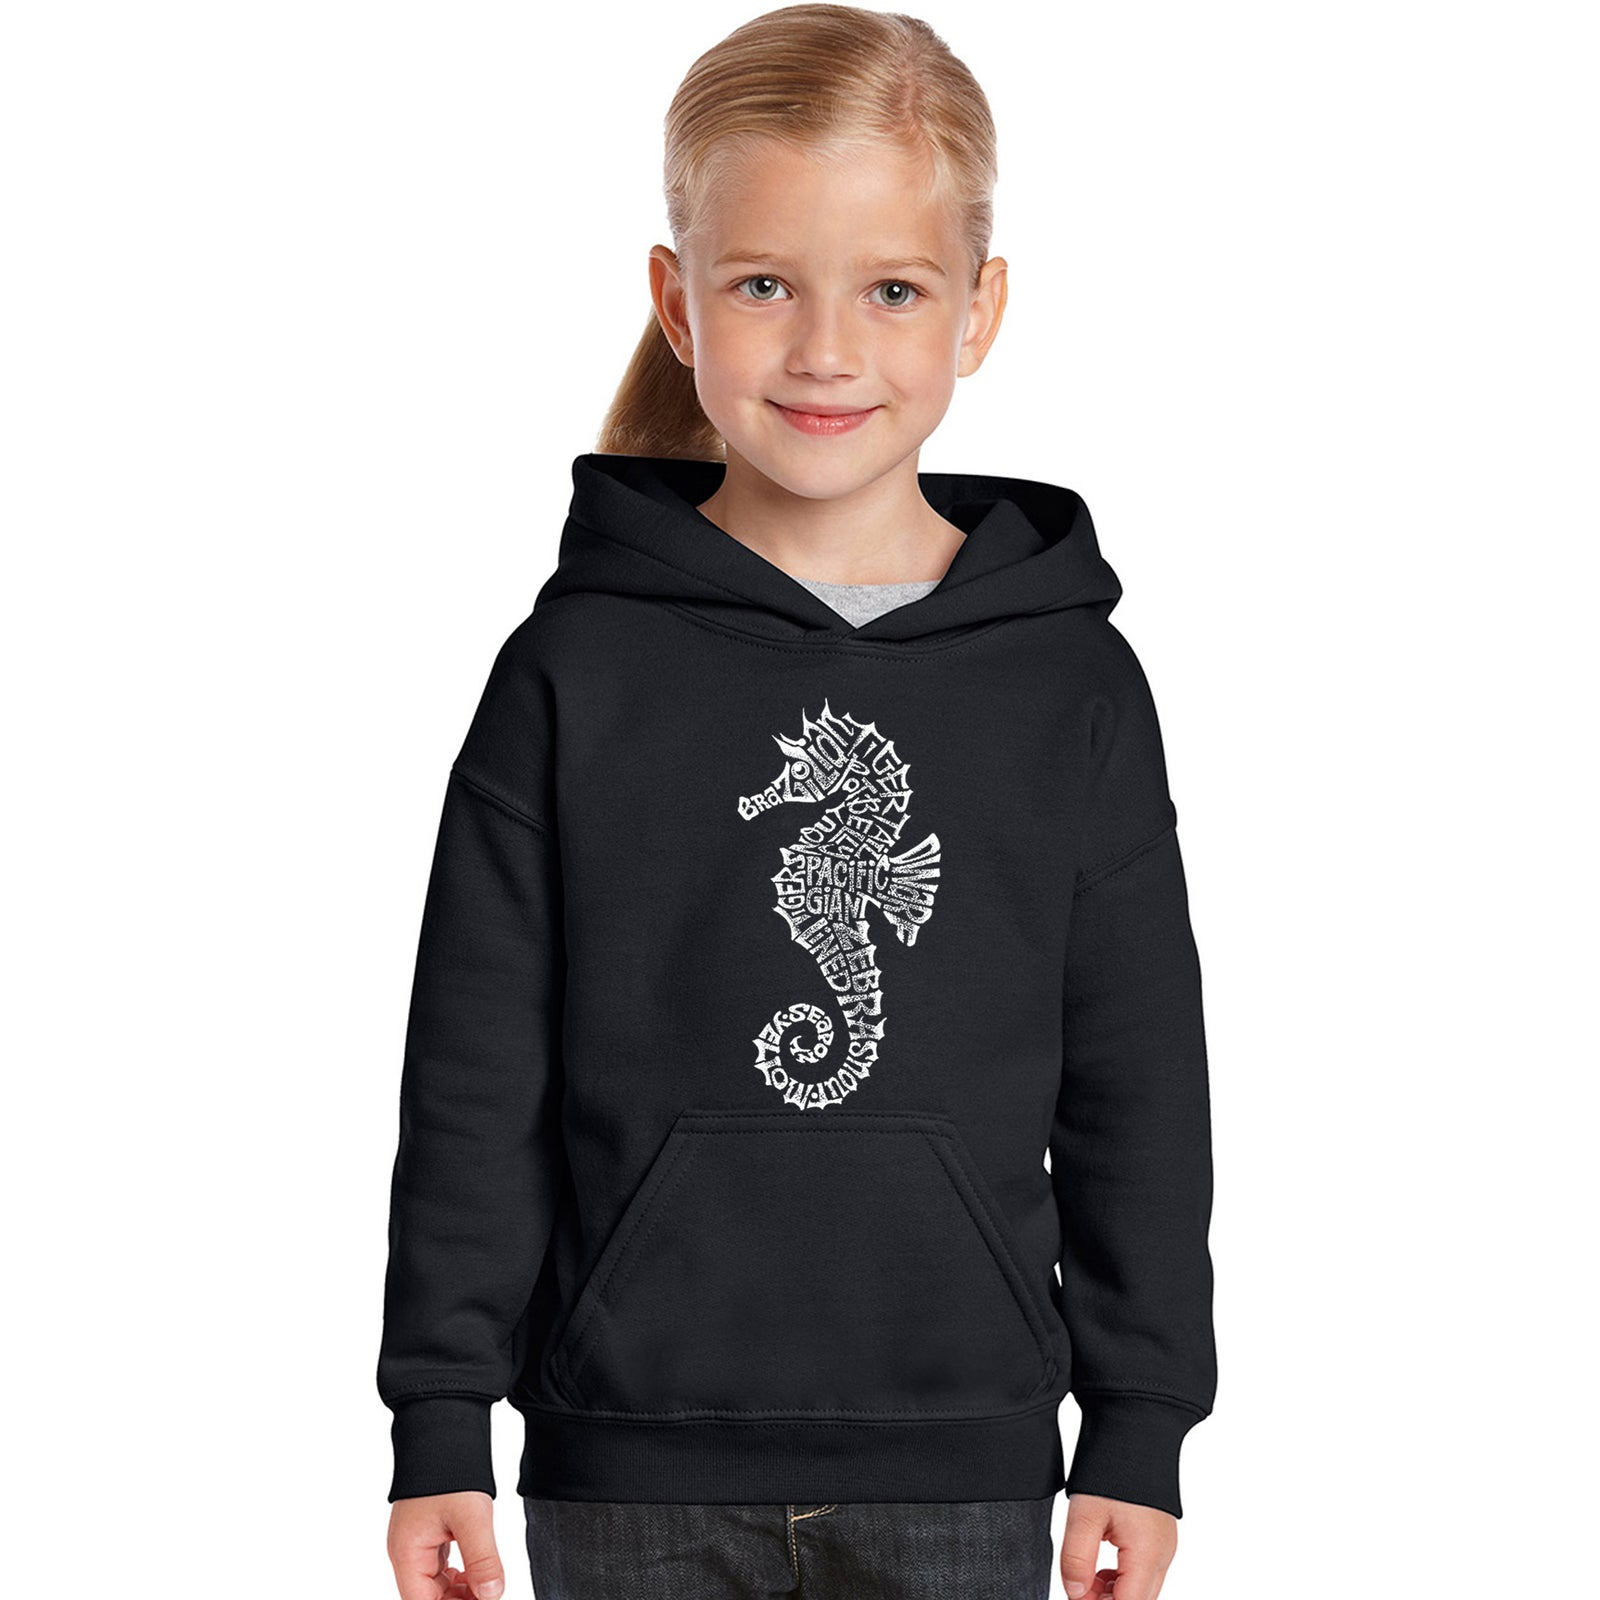 Girl's Word Art Hooded Sweatshirt - Types of Seahorse